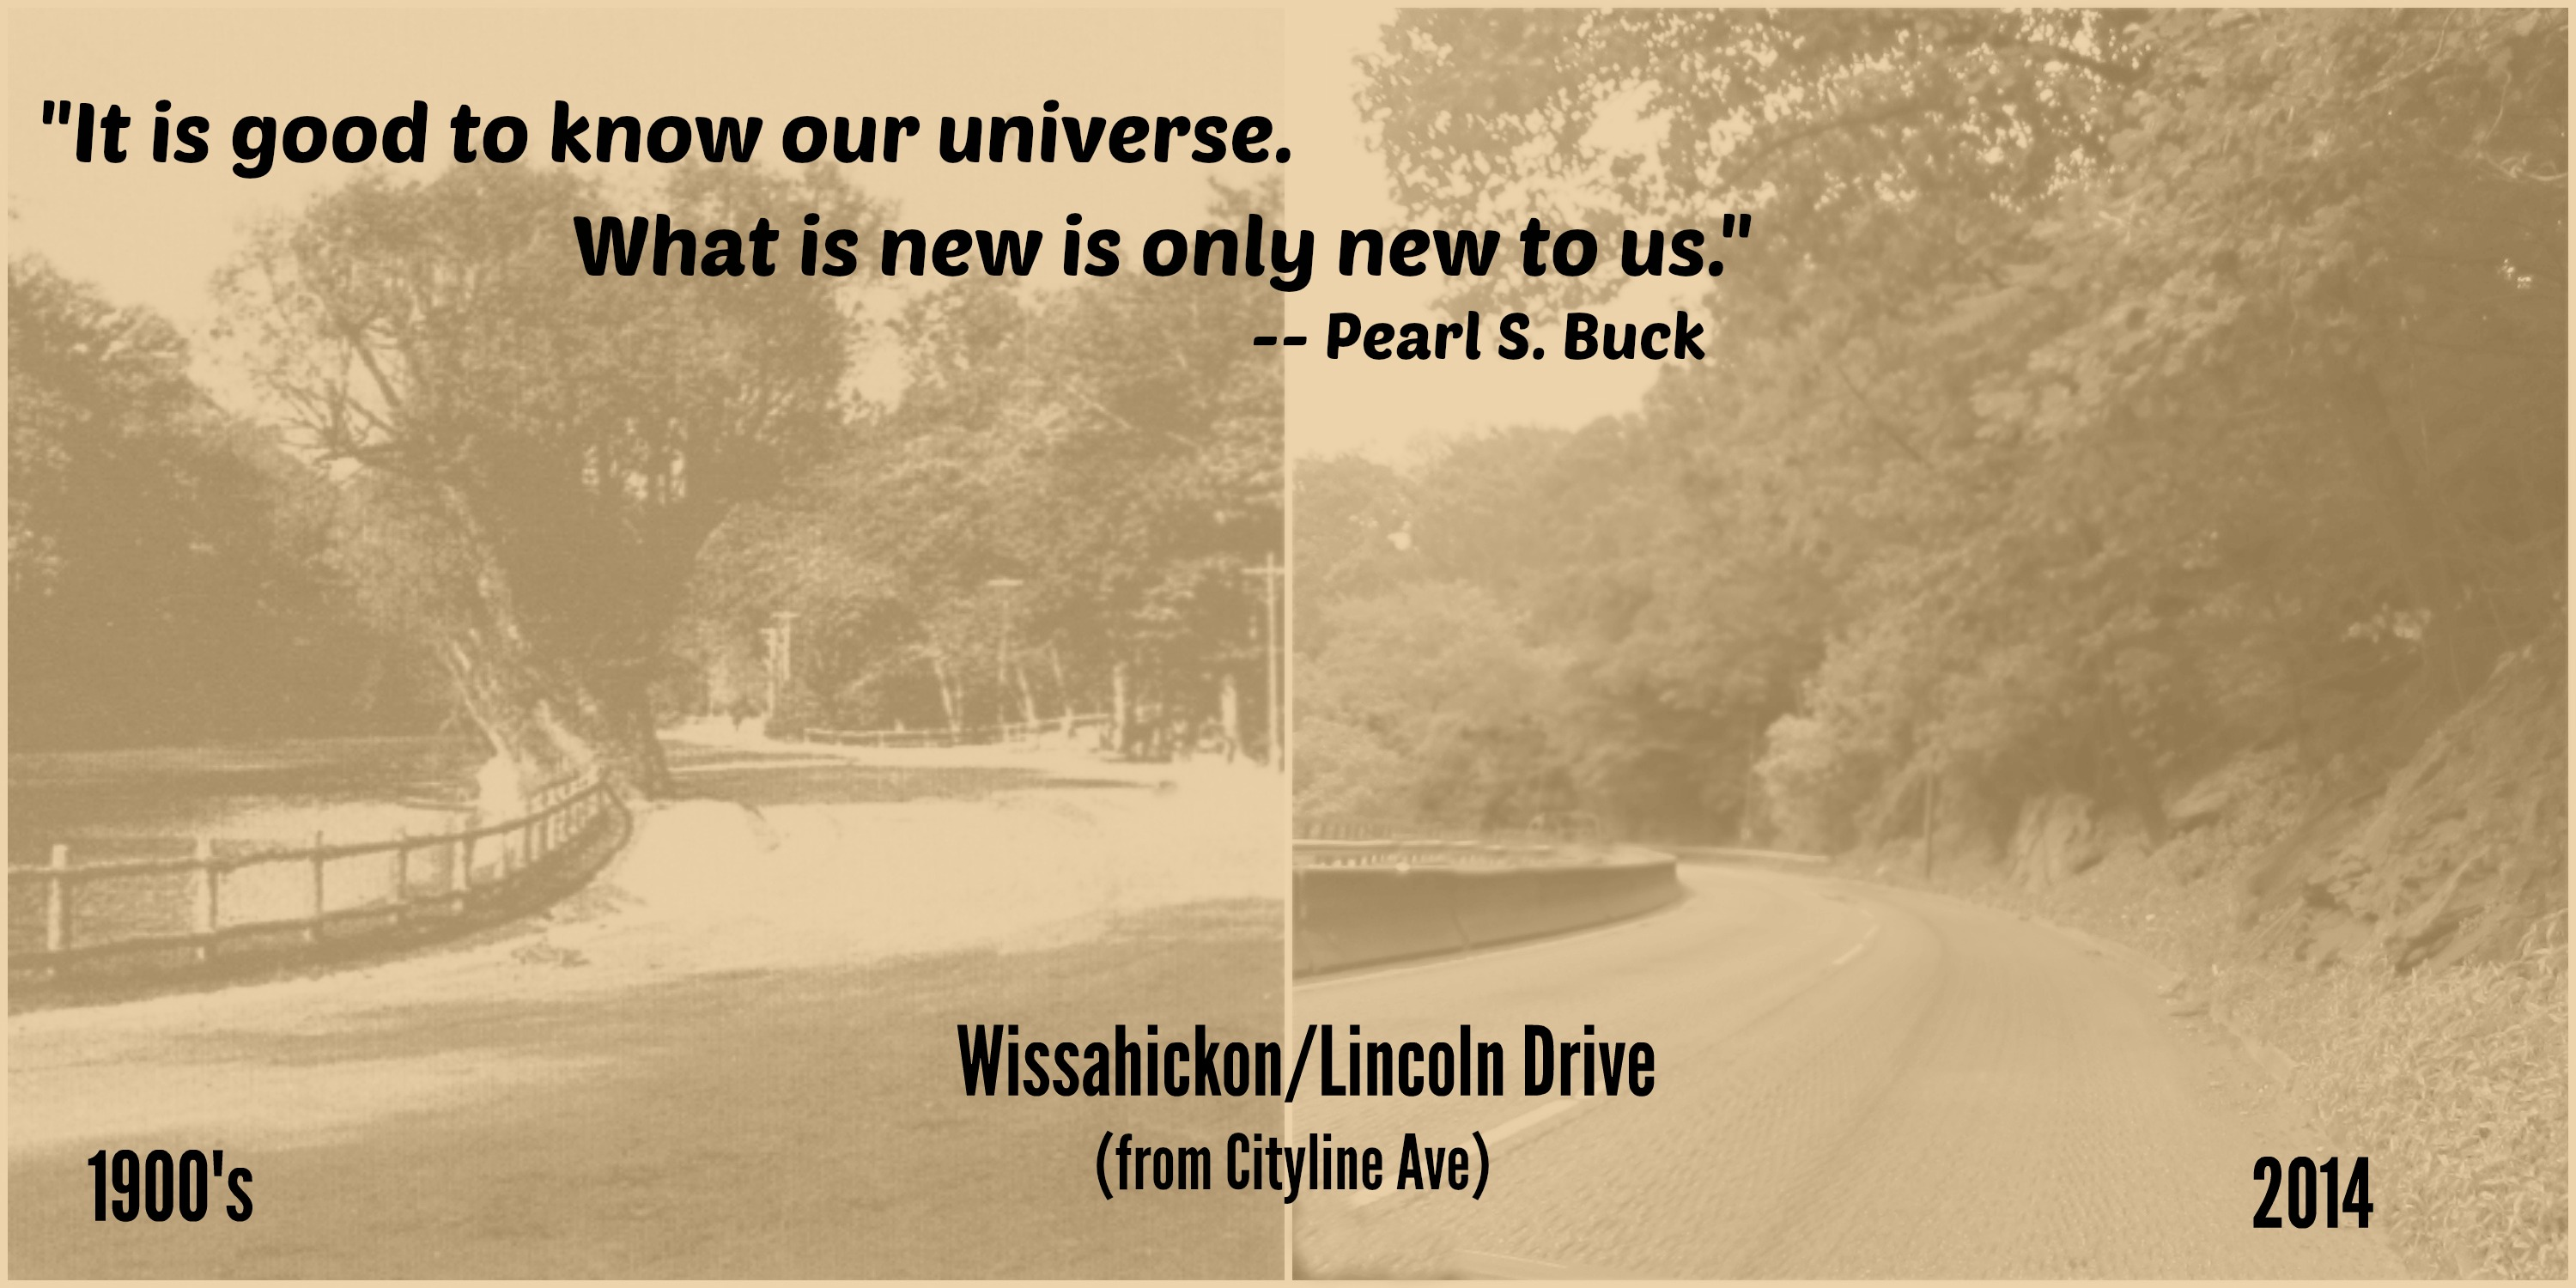 curve of Lincoln drive very similar b a pearl s buck text